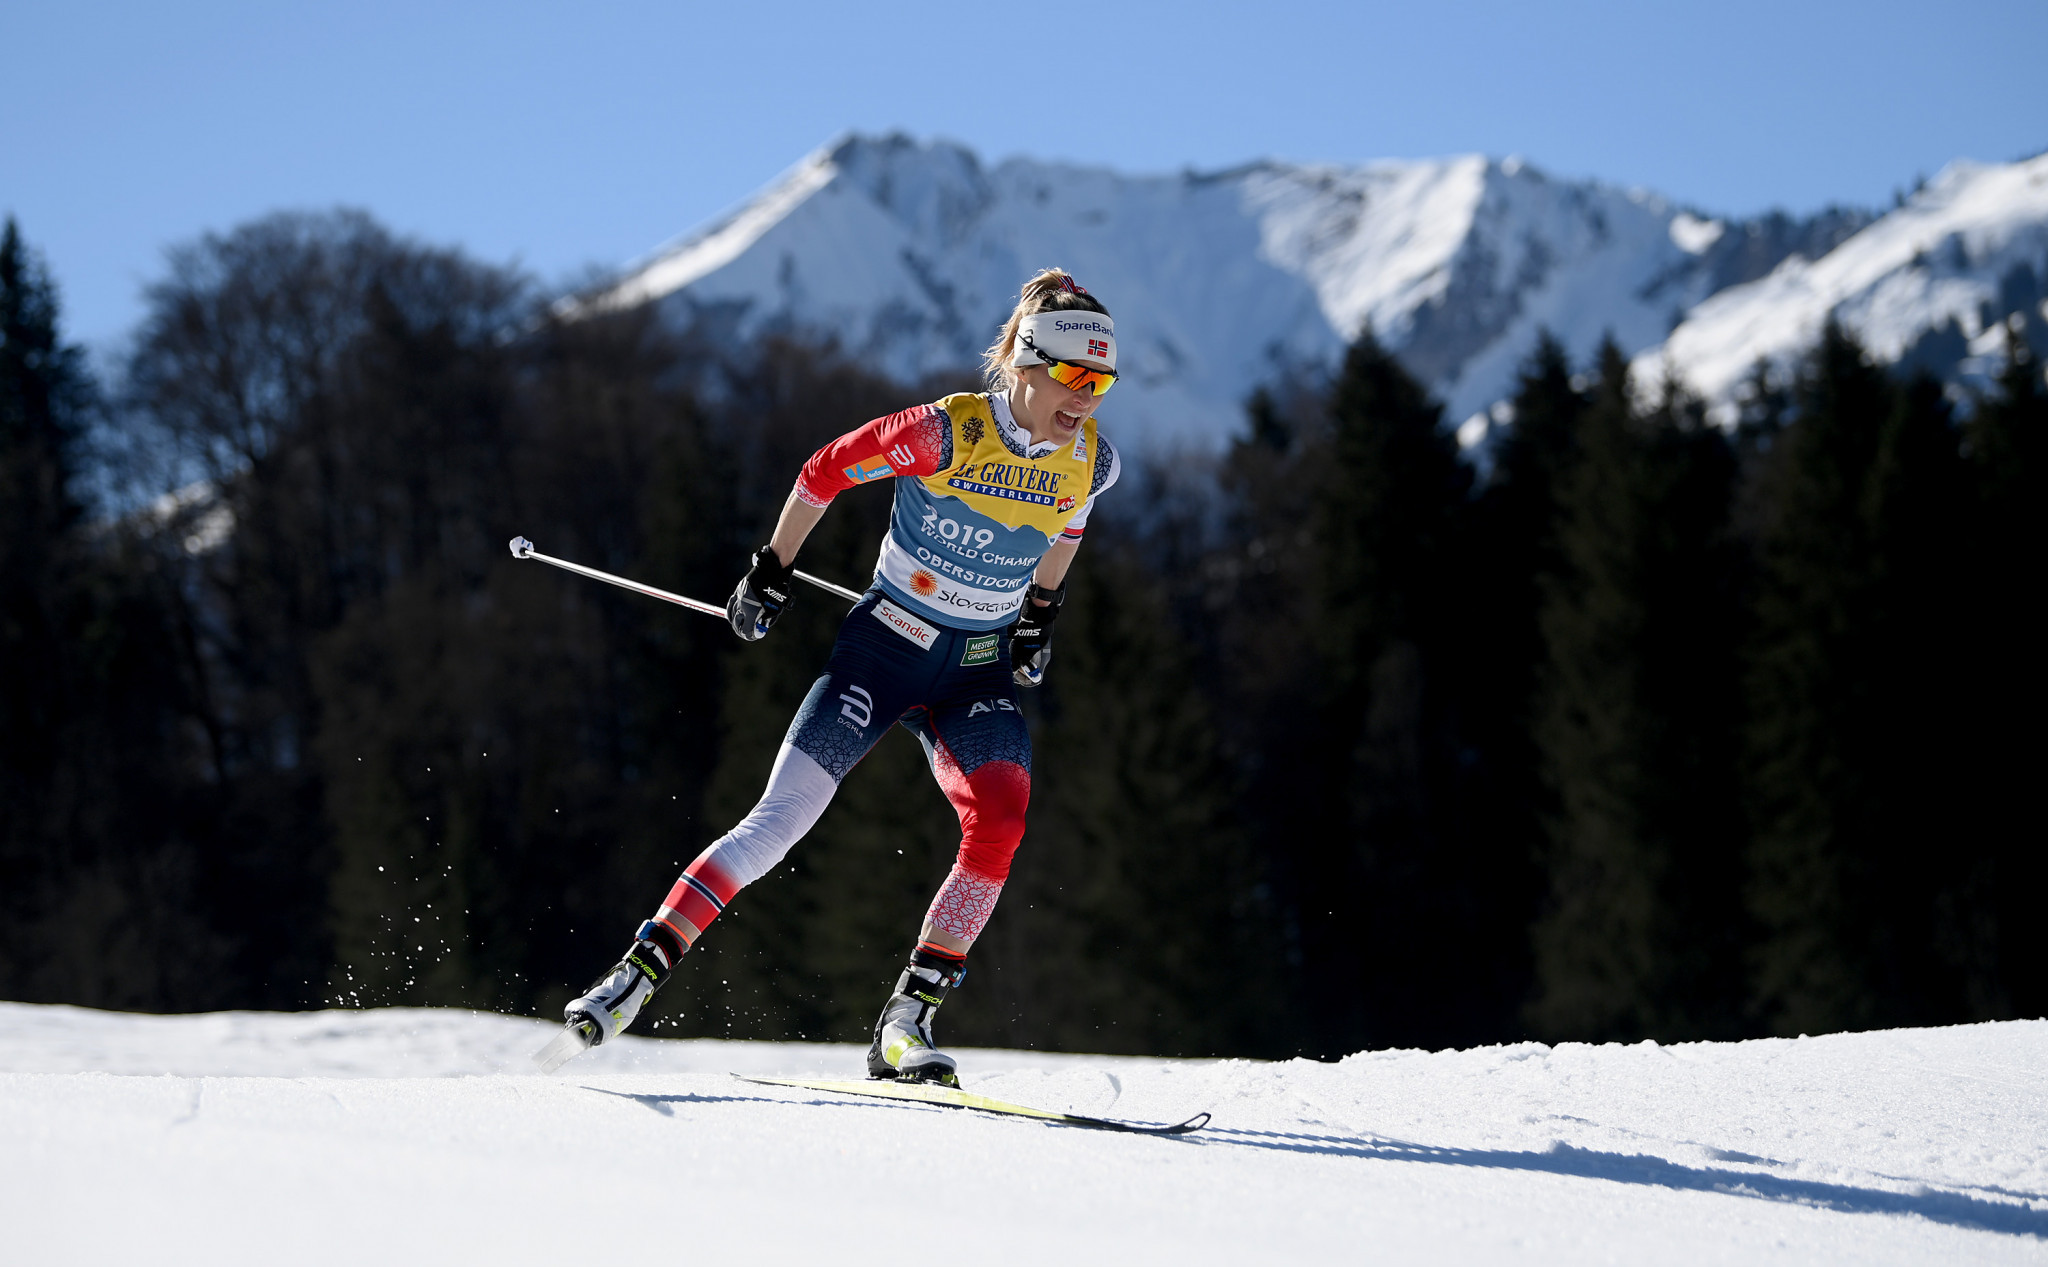 Johaug cruises to 10km cross-country title defence at Nordic World Ski Championships